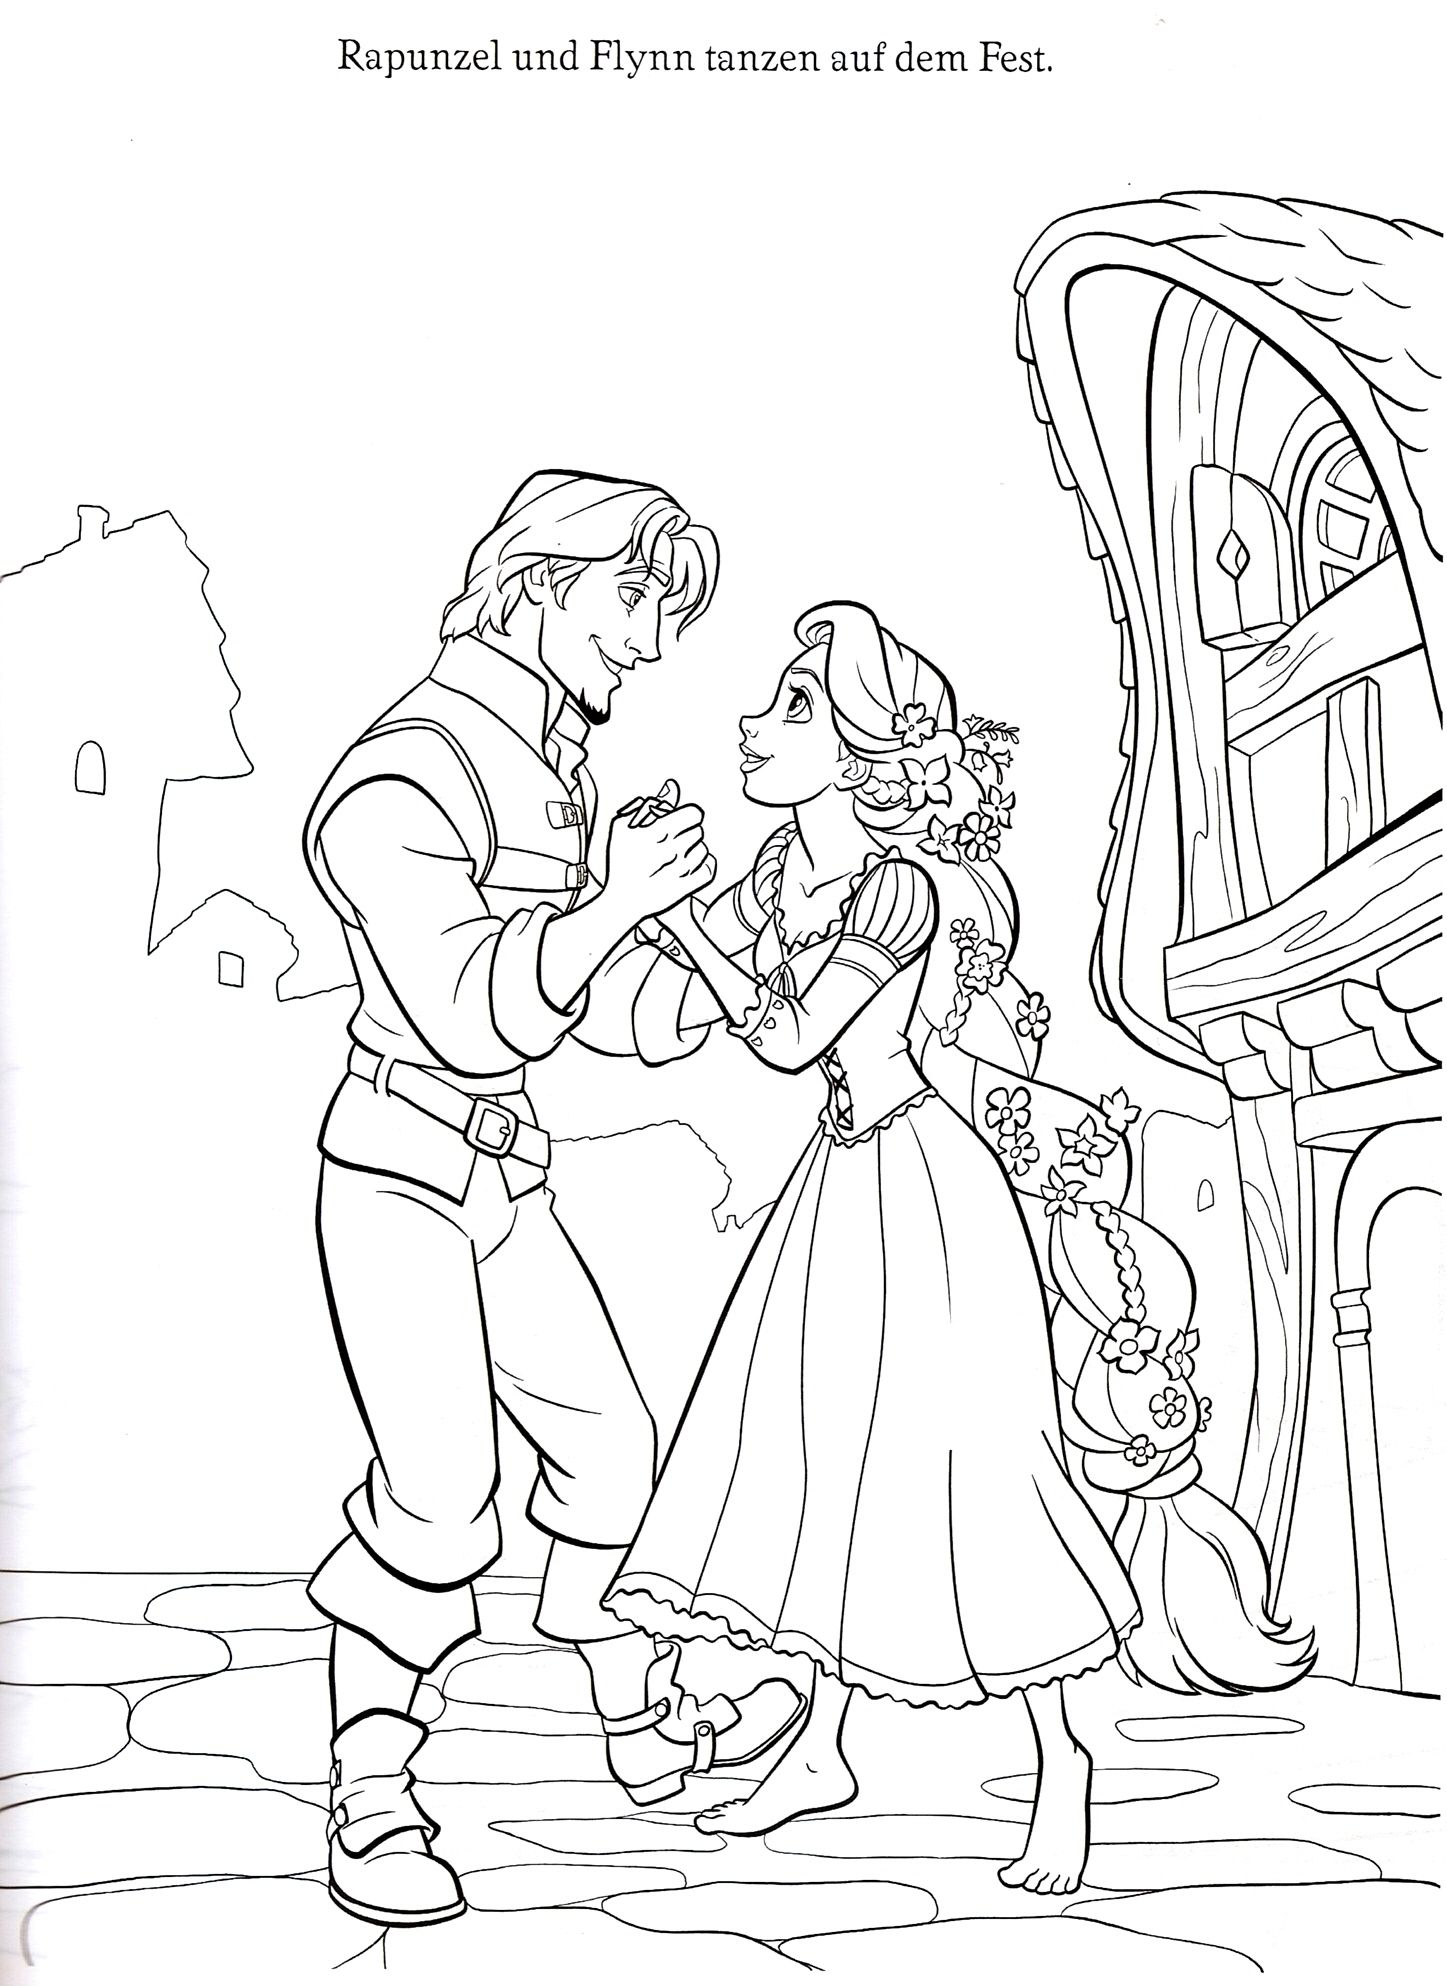 Disney princess coloring vanity case - Disney Princess Tangled Rapunzel Coloring Sheets Free Printable For Kindergarten